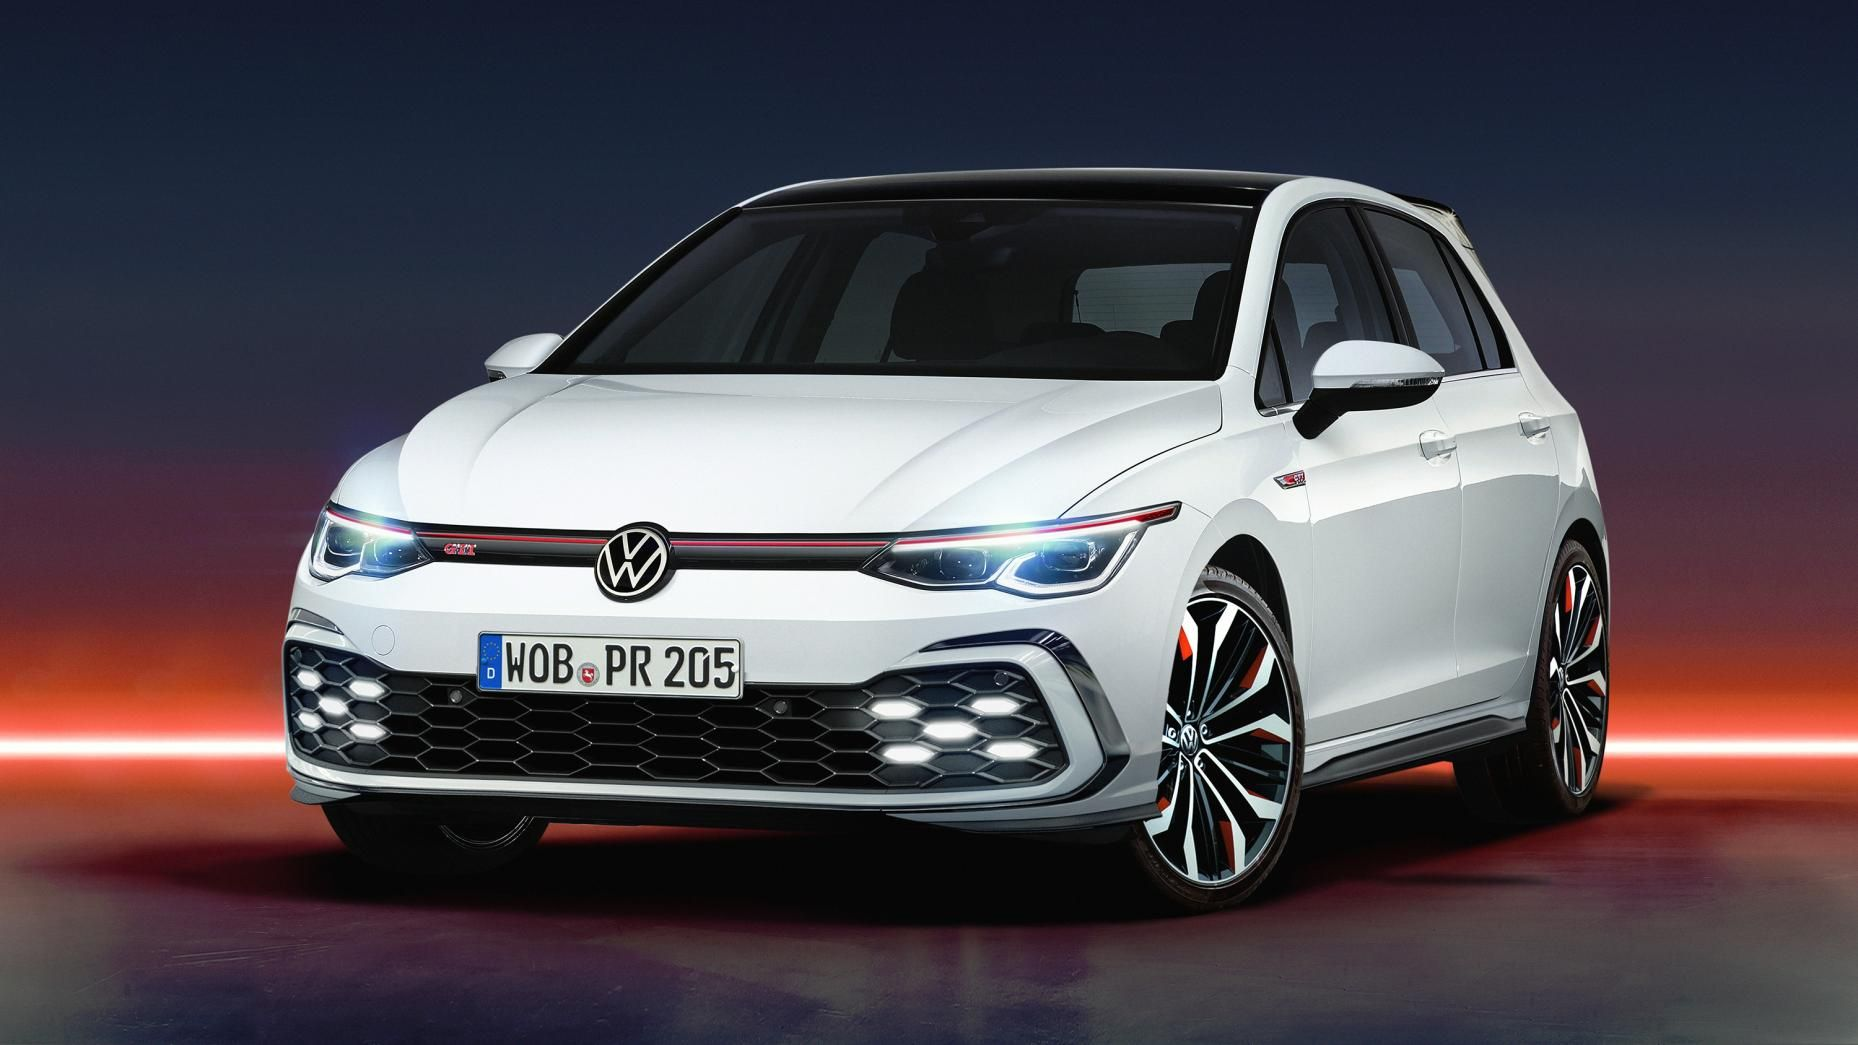 With The 2020 Volkswagen Golf Gte Rated At 242 Horsepower Is There A Future For The Gti Top Speed Volkswagen Golf Volkswagen Latest Cars